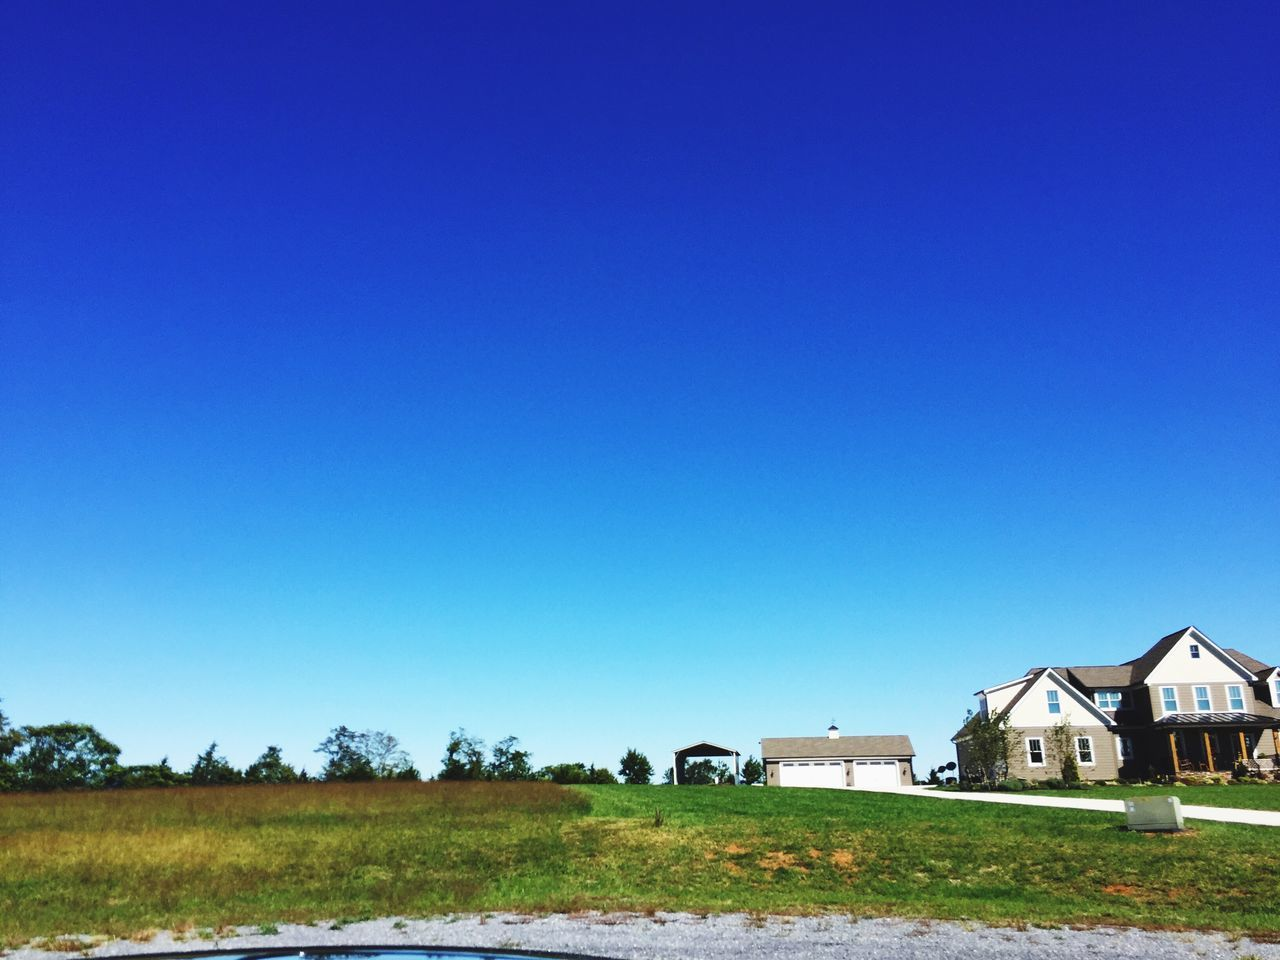 Copy Space Blue Clear Sky Building Exterior Built Structure Architecture Field No People Grass Landscape Tree Rural Scene House Nature Day Outdoors Tranquil Scene Country House Beauty In Nature